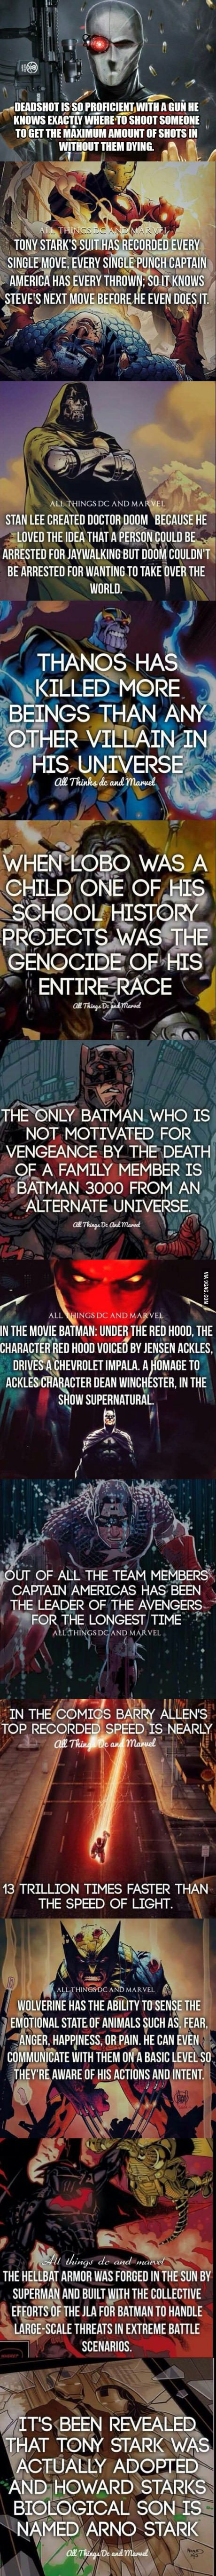 Marvel and Dc facts